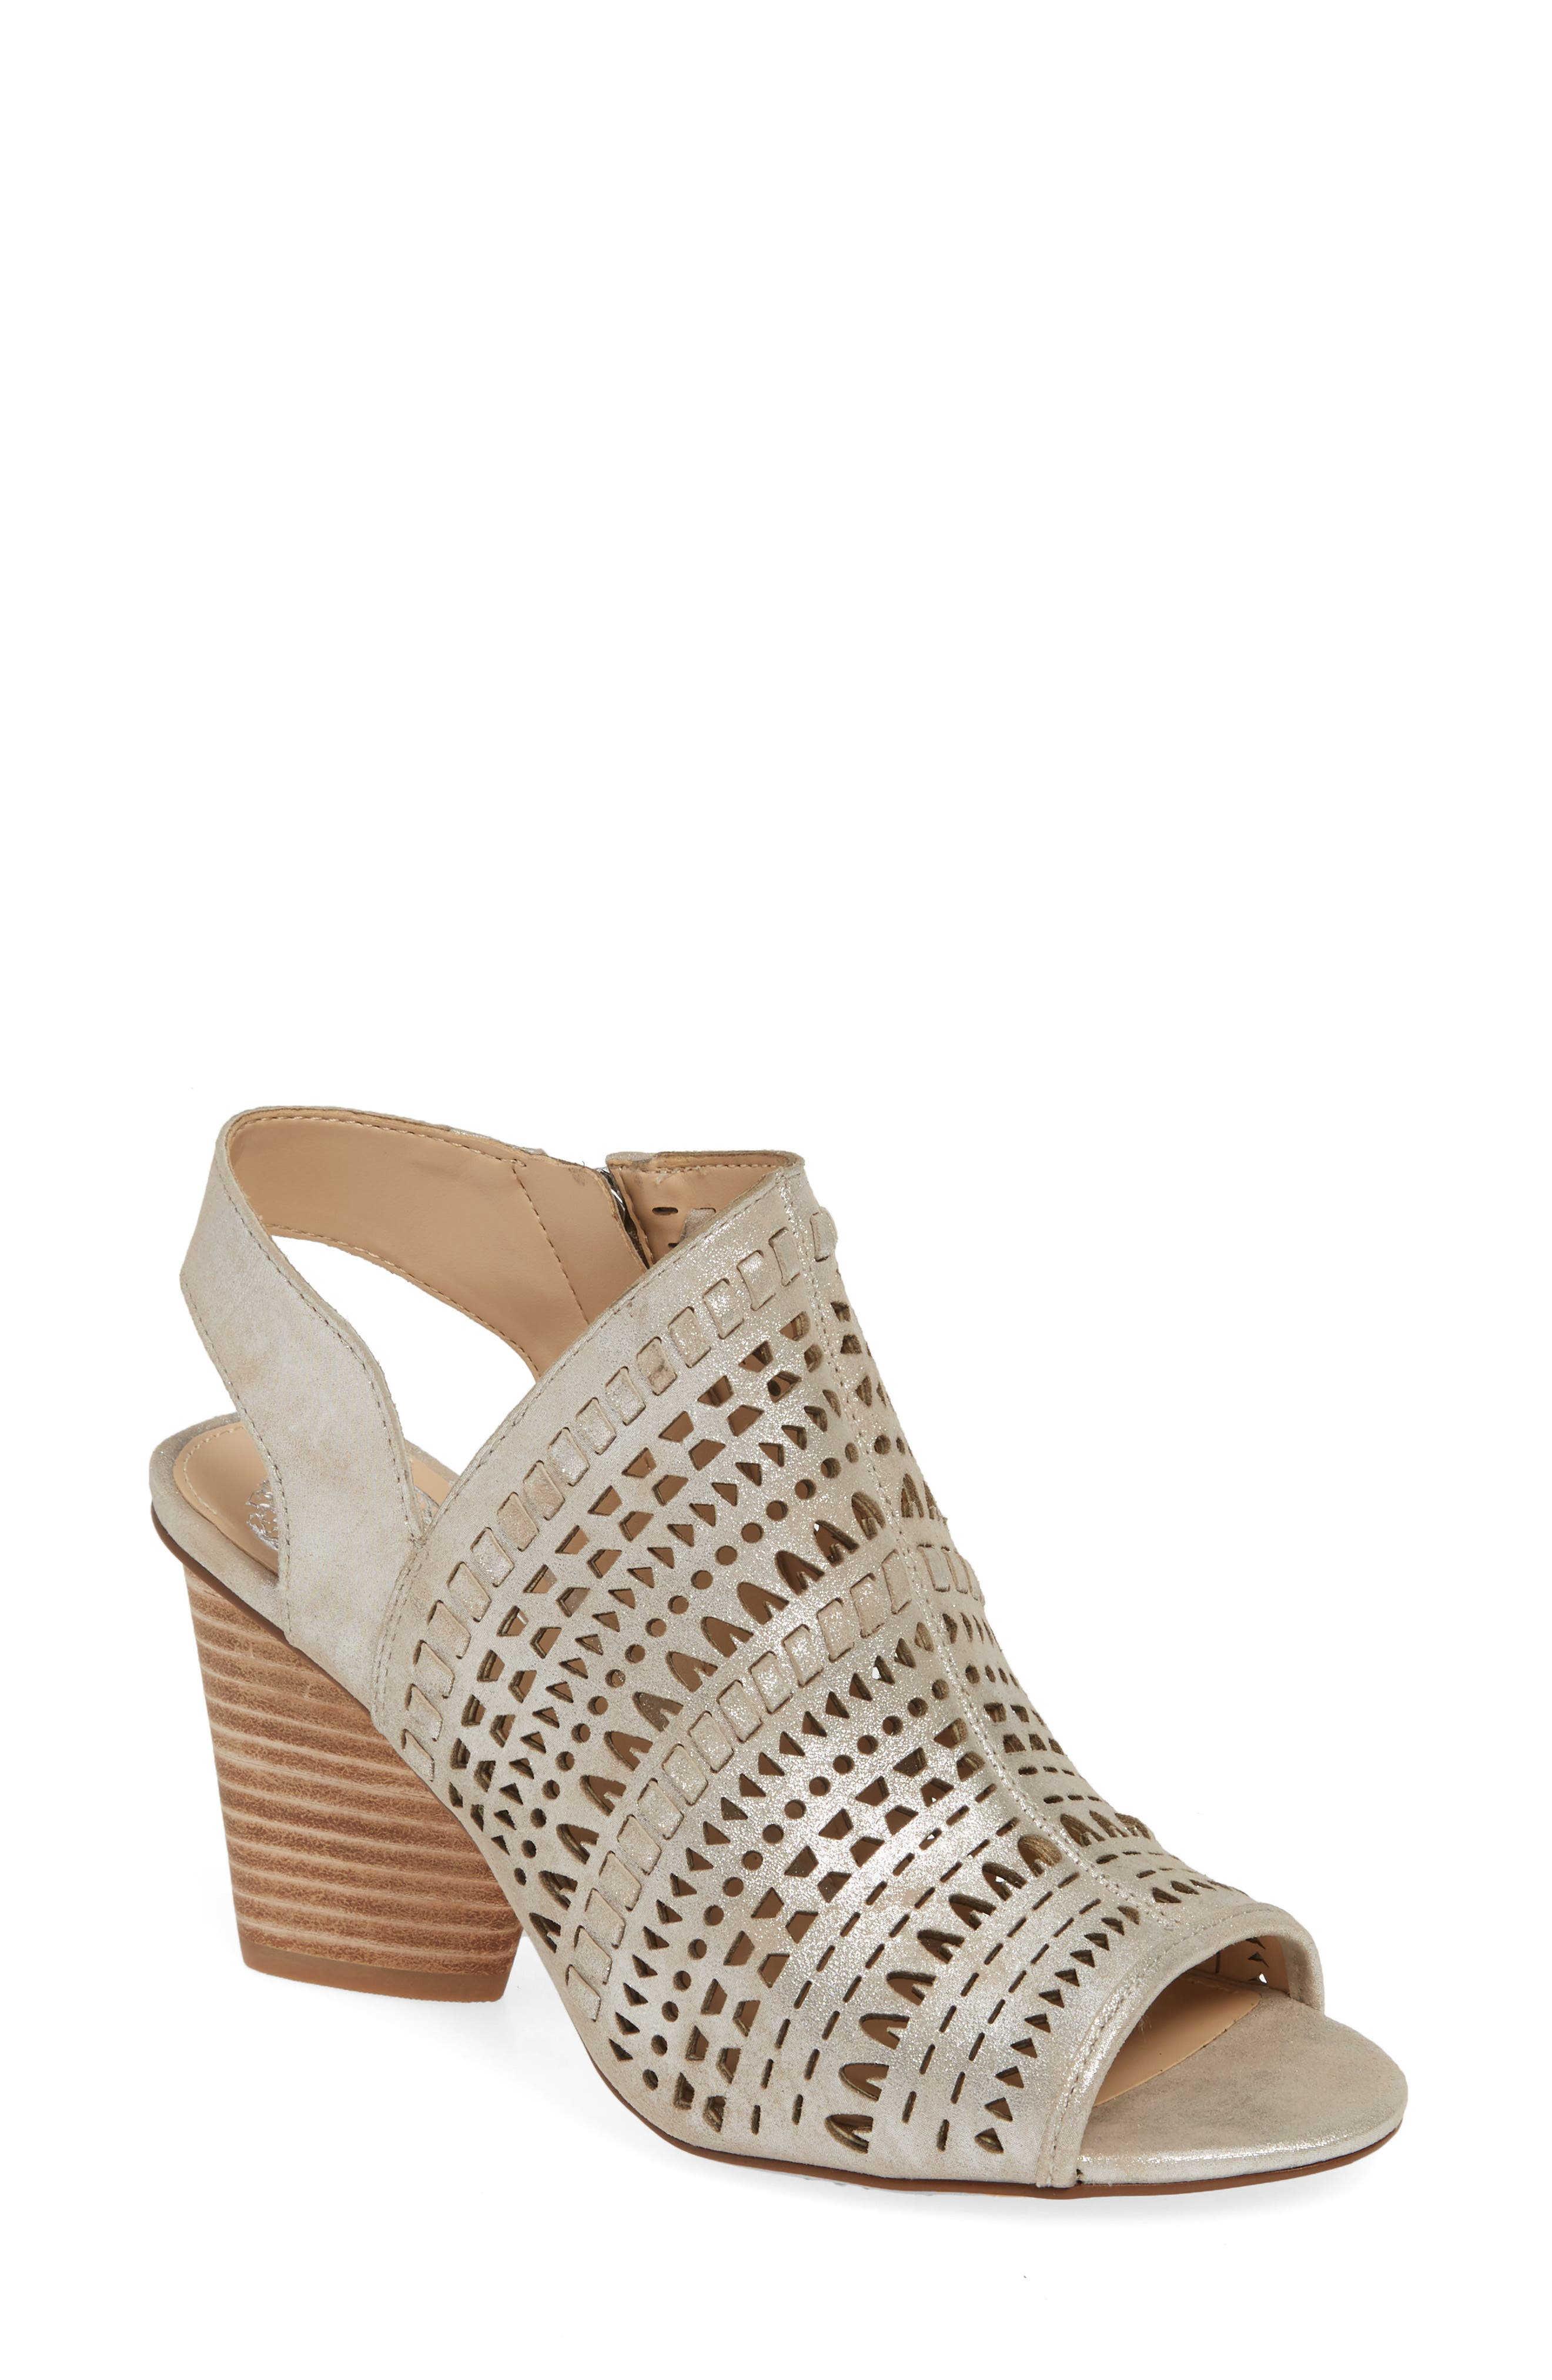 Vince Camuto Derechie Perforated Shield Sandal- Metallic